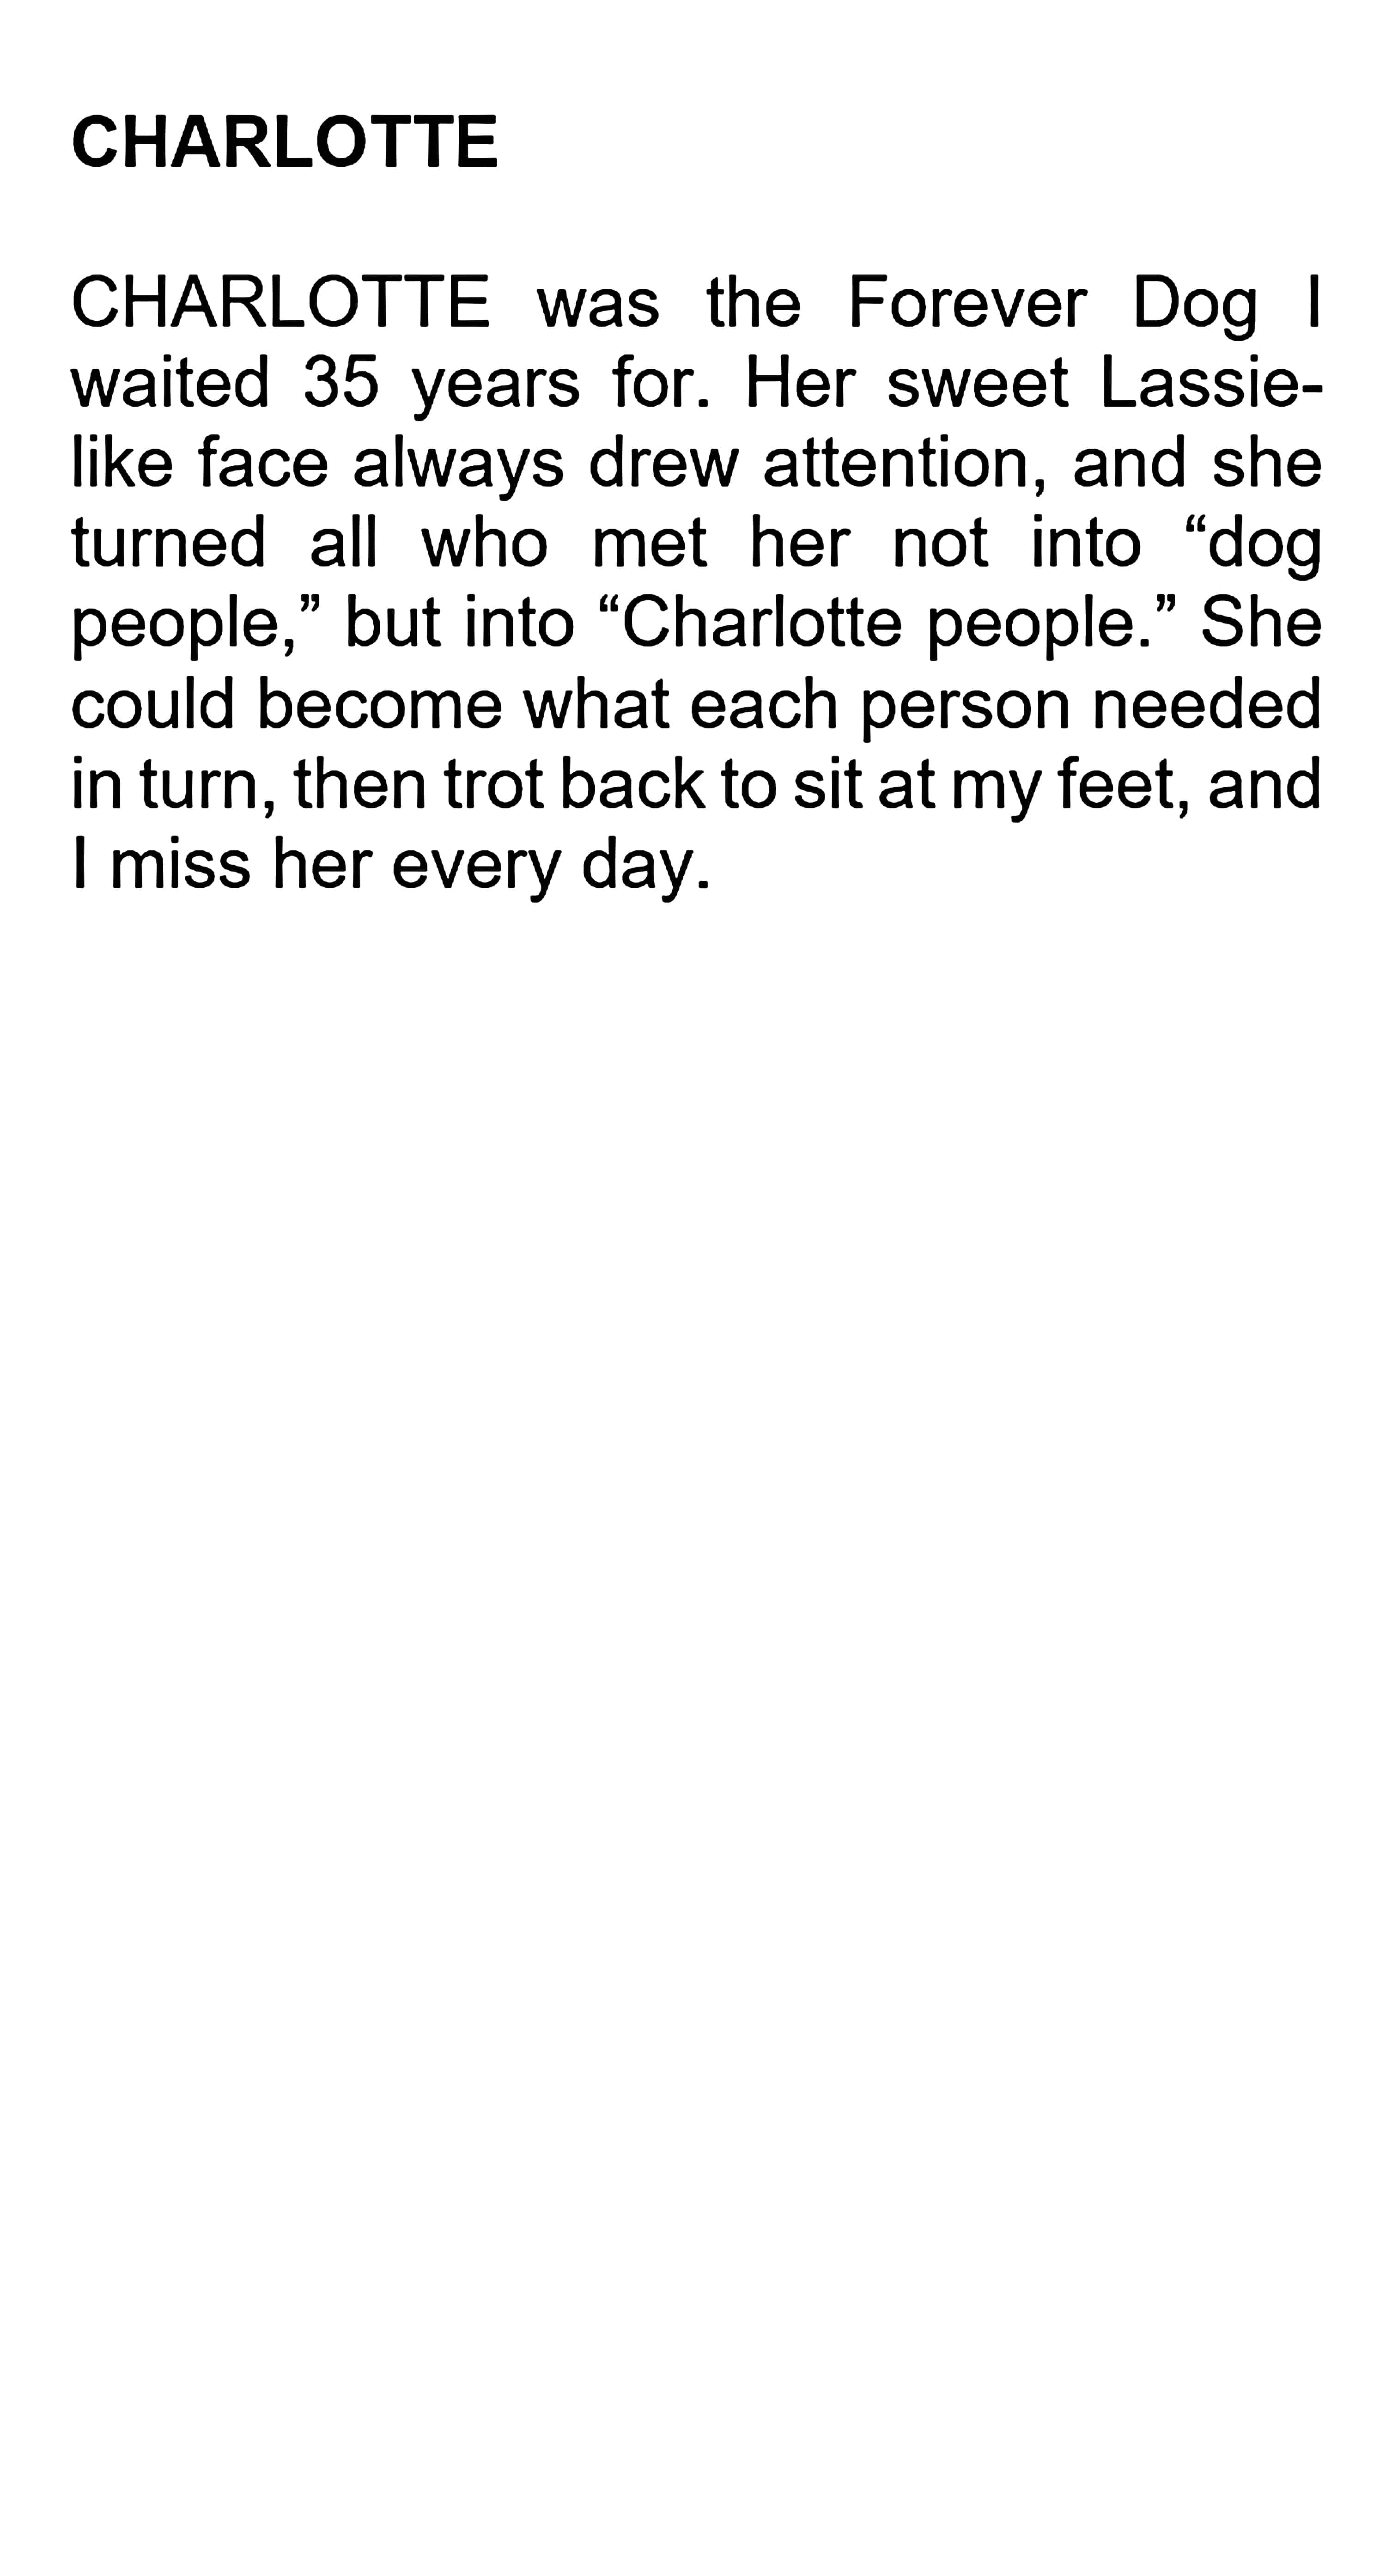 CHARLOTTE TEXT